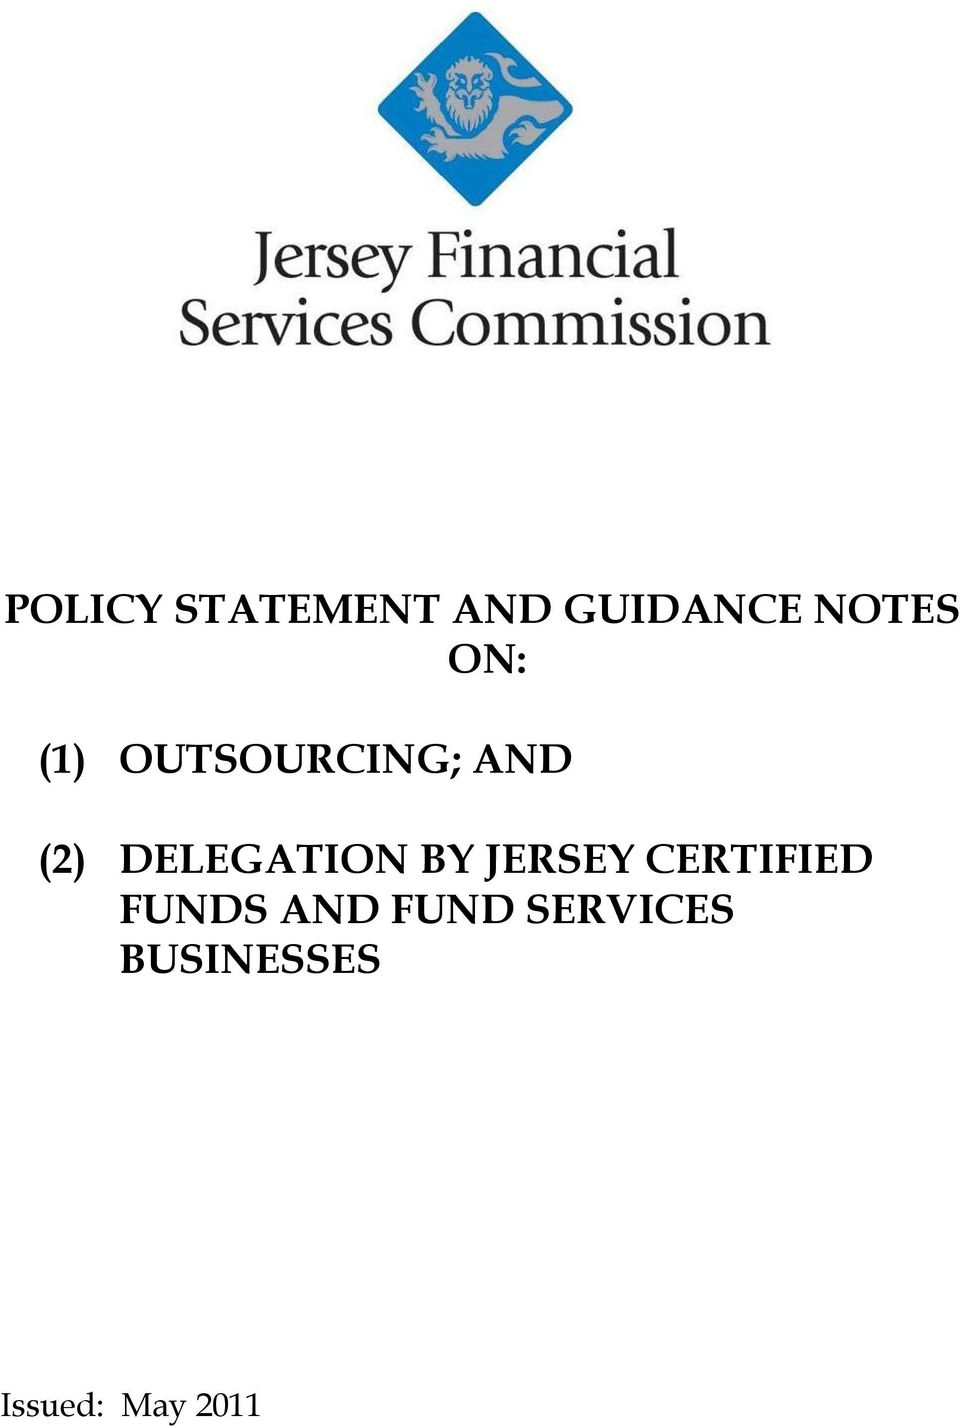 DELEGATION BY JERSEY CERTIFIED FUNDS